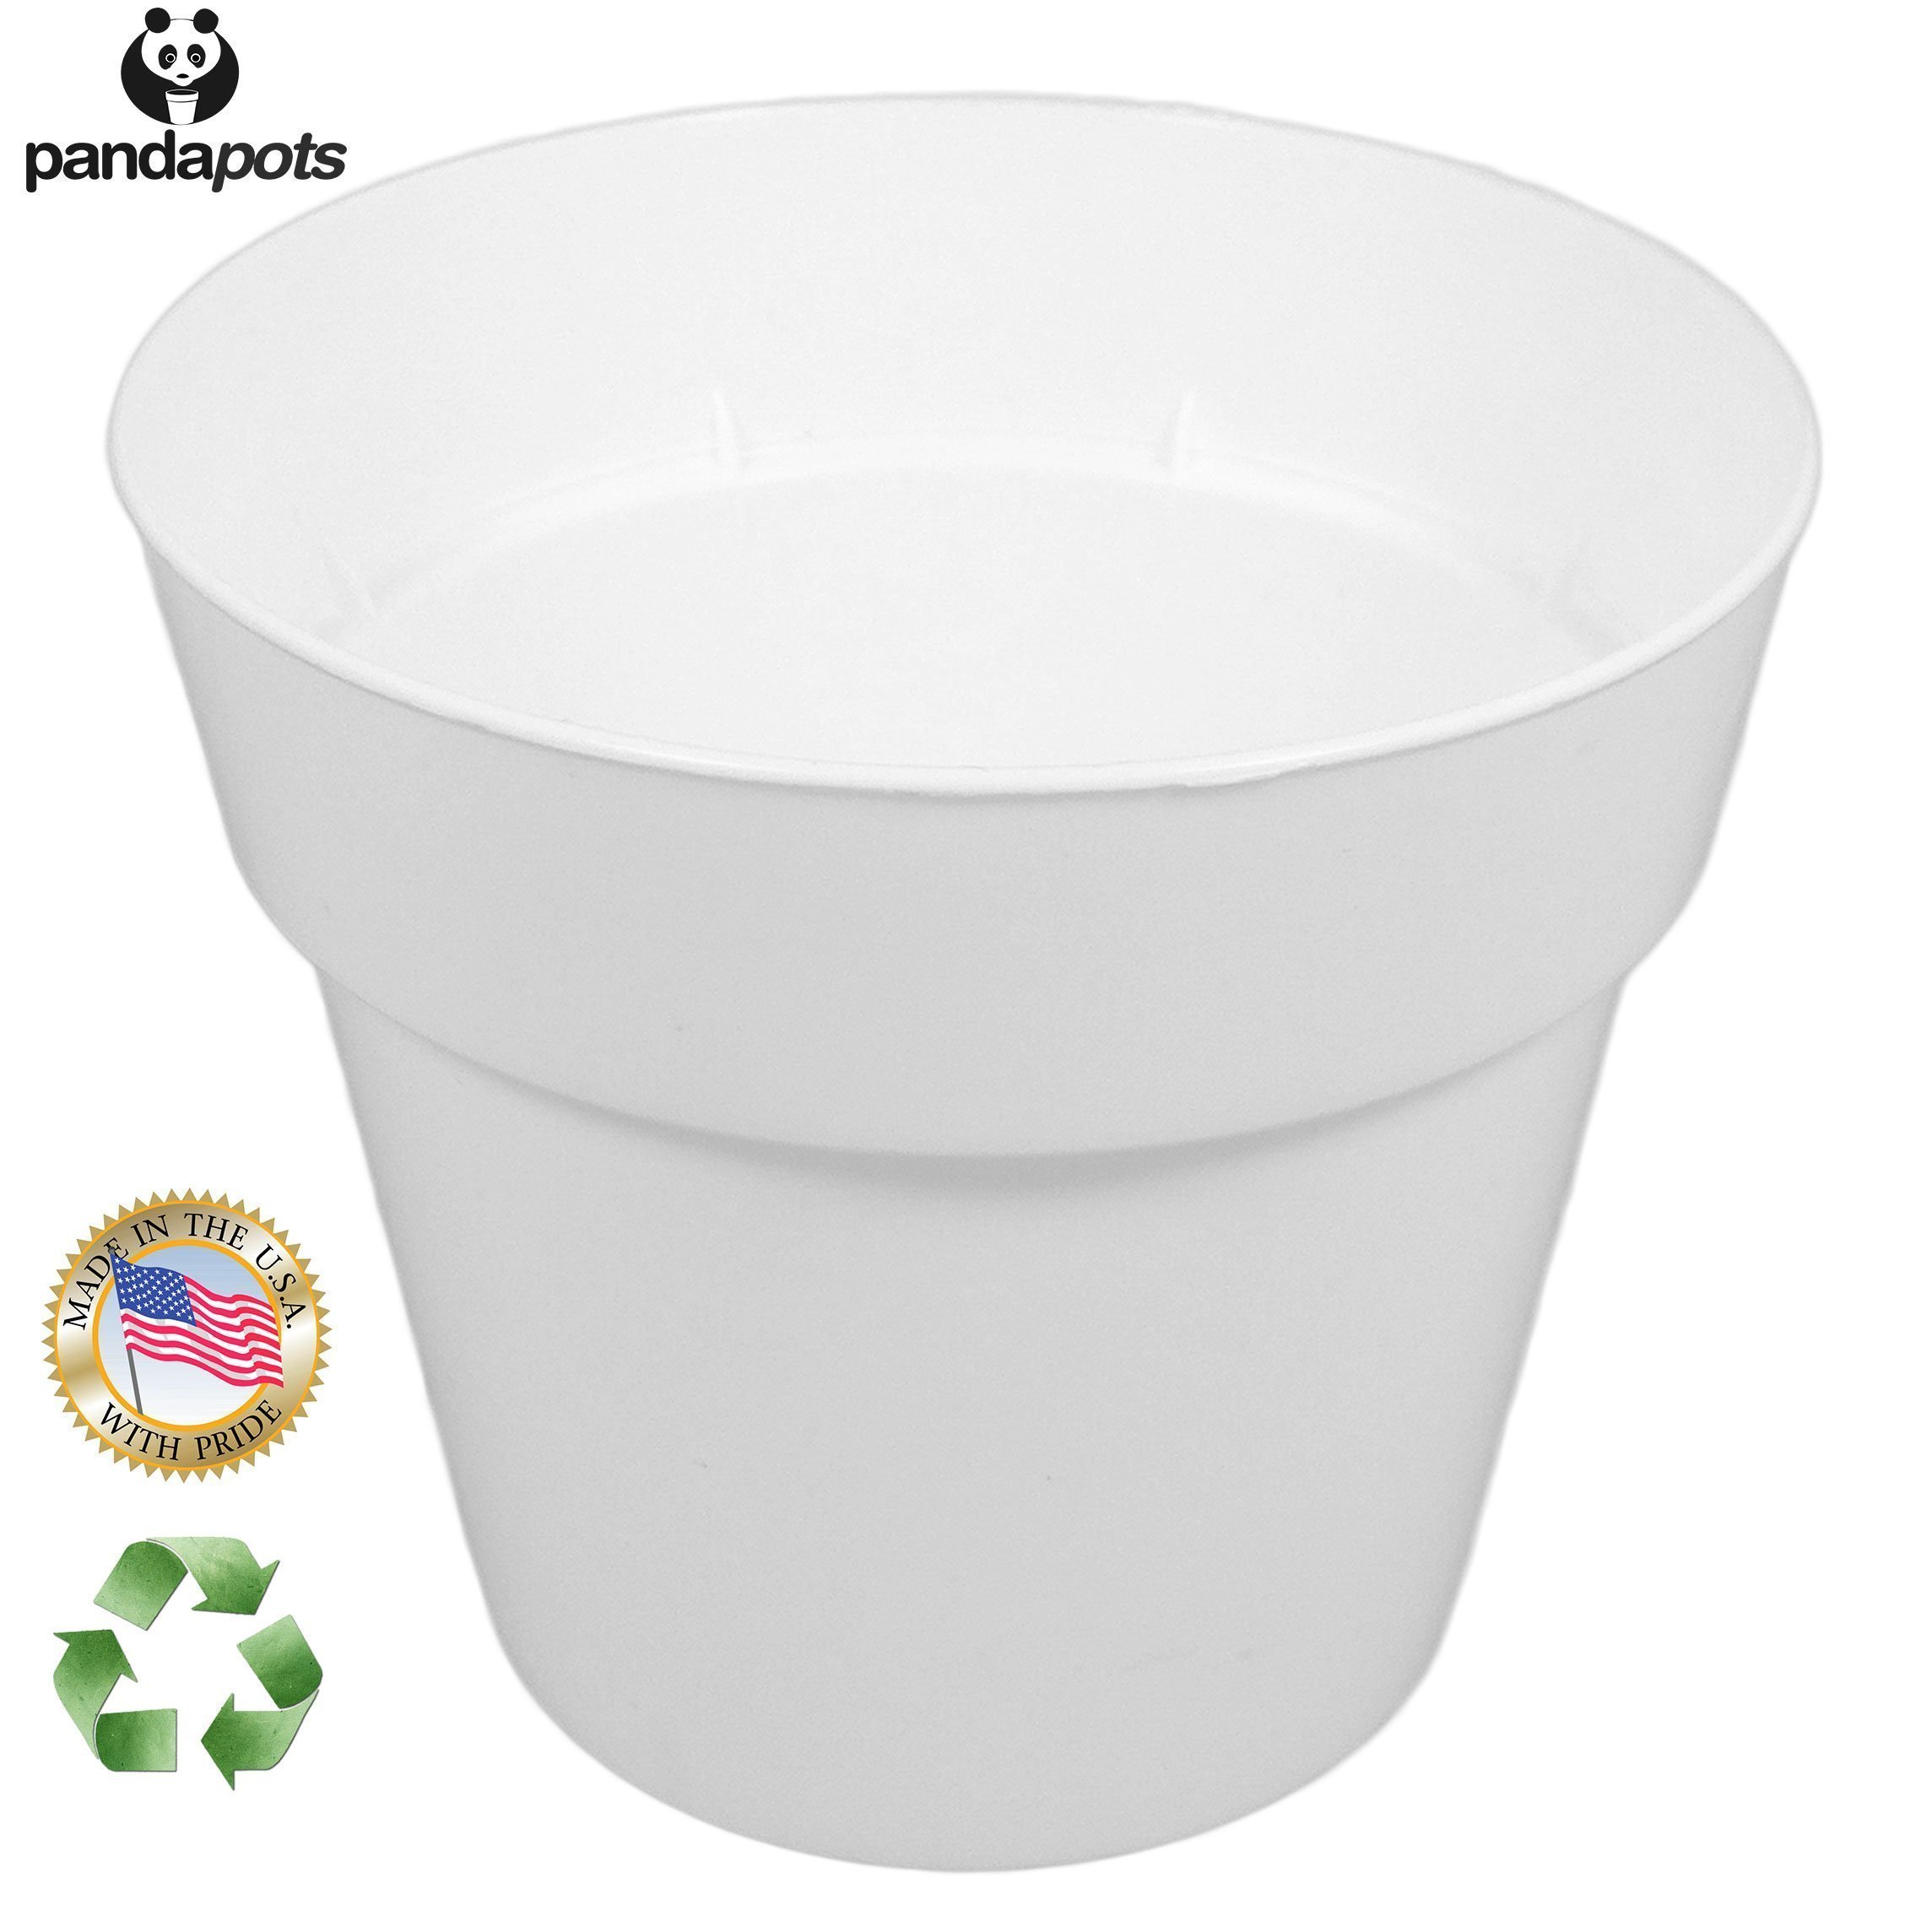 Panda Pots 50 Plant Pots - 3 Inch Diameter - Perfect for Succulents - 100% Recycled Plastic - Made in USA - Strong, Reusable - By trade;